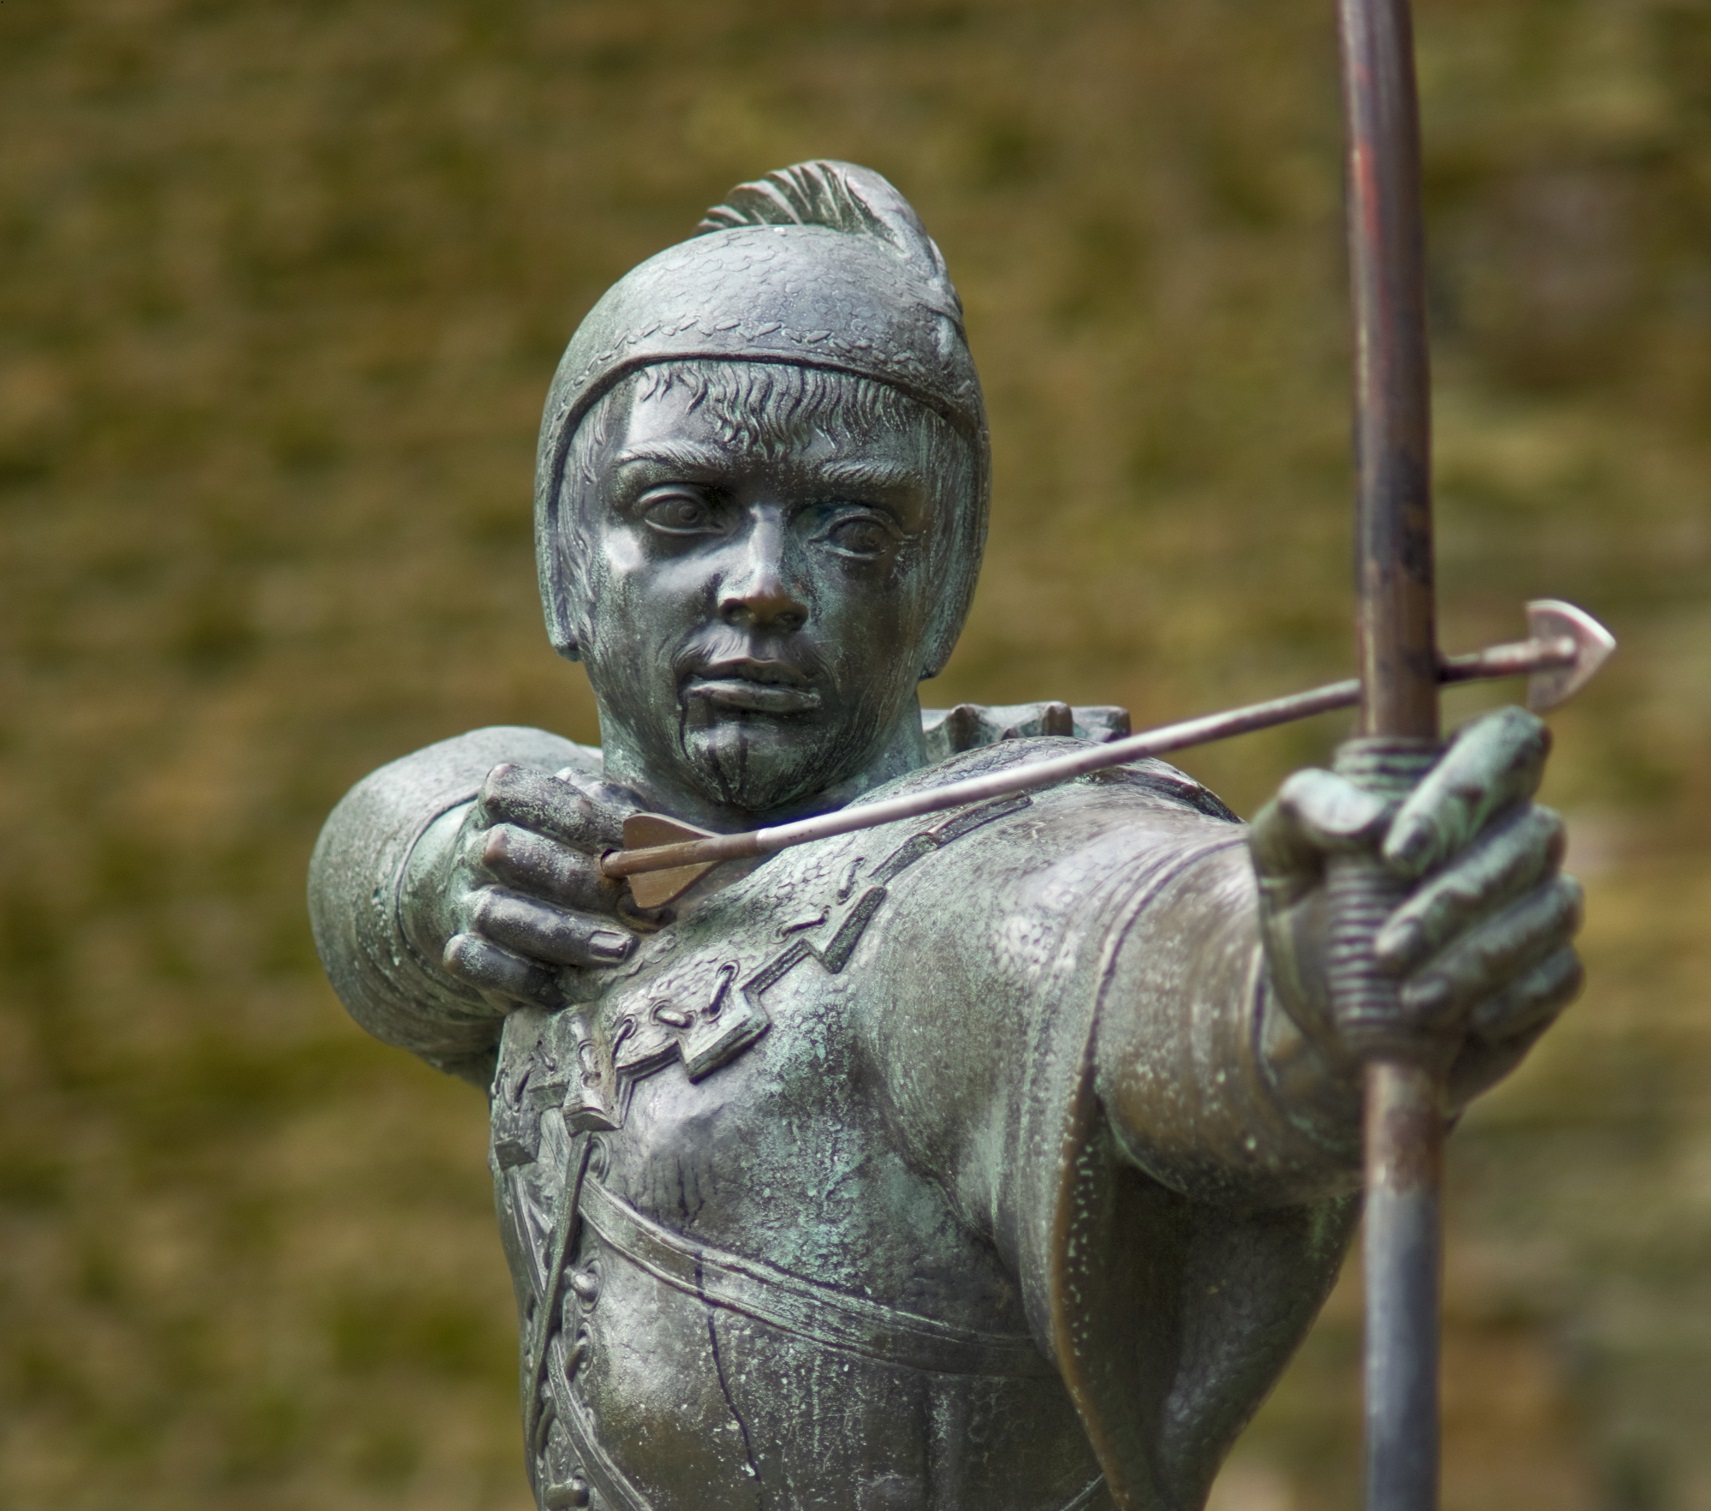 Statue of Robin Hood in Nottingham